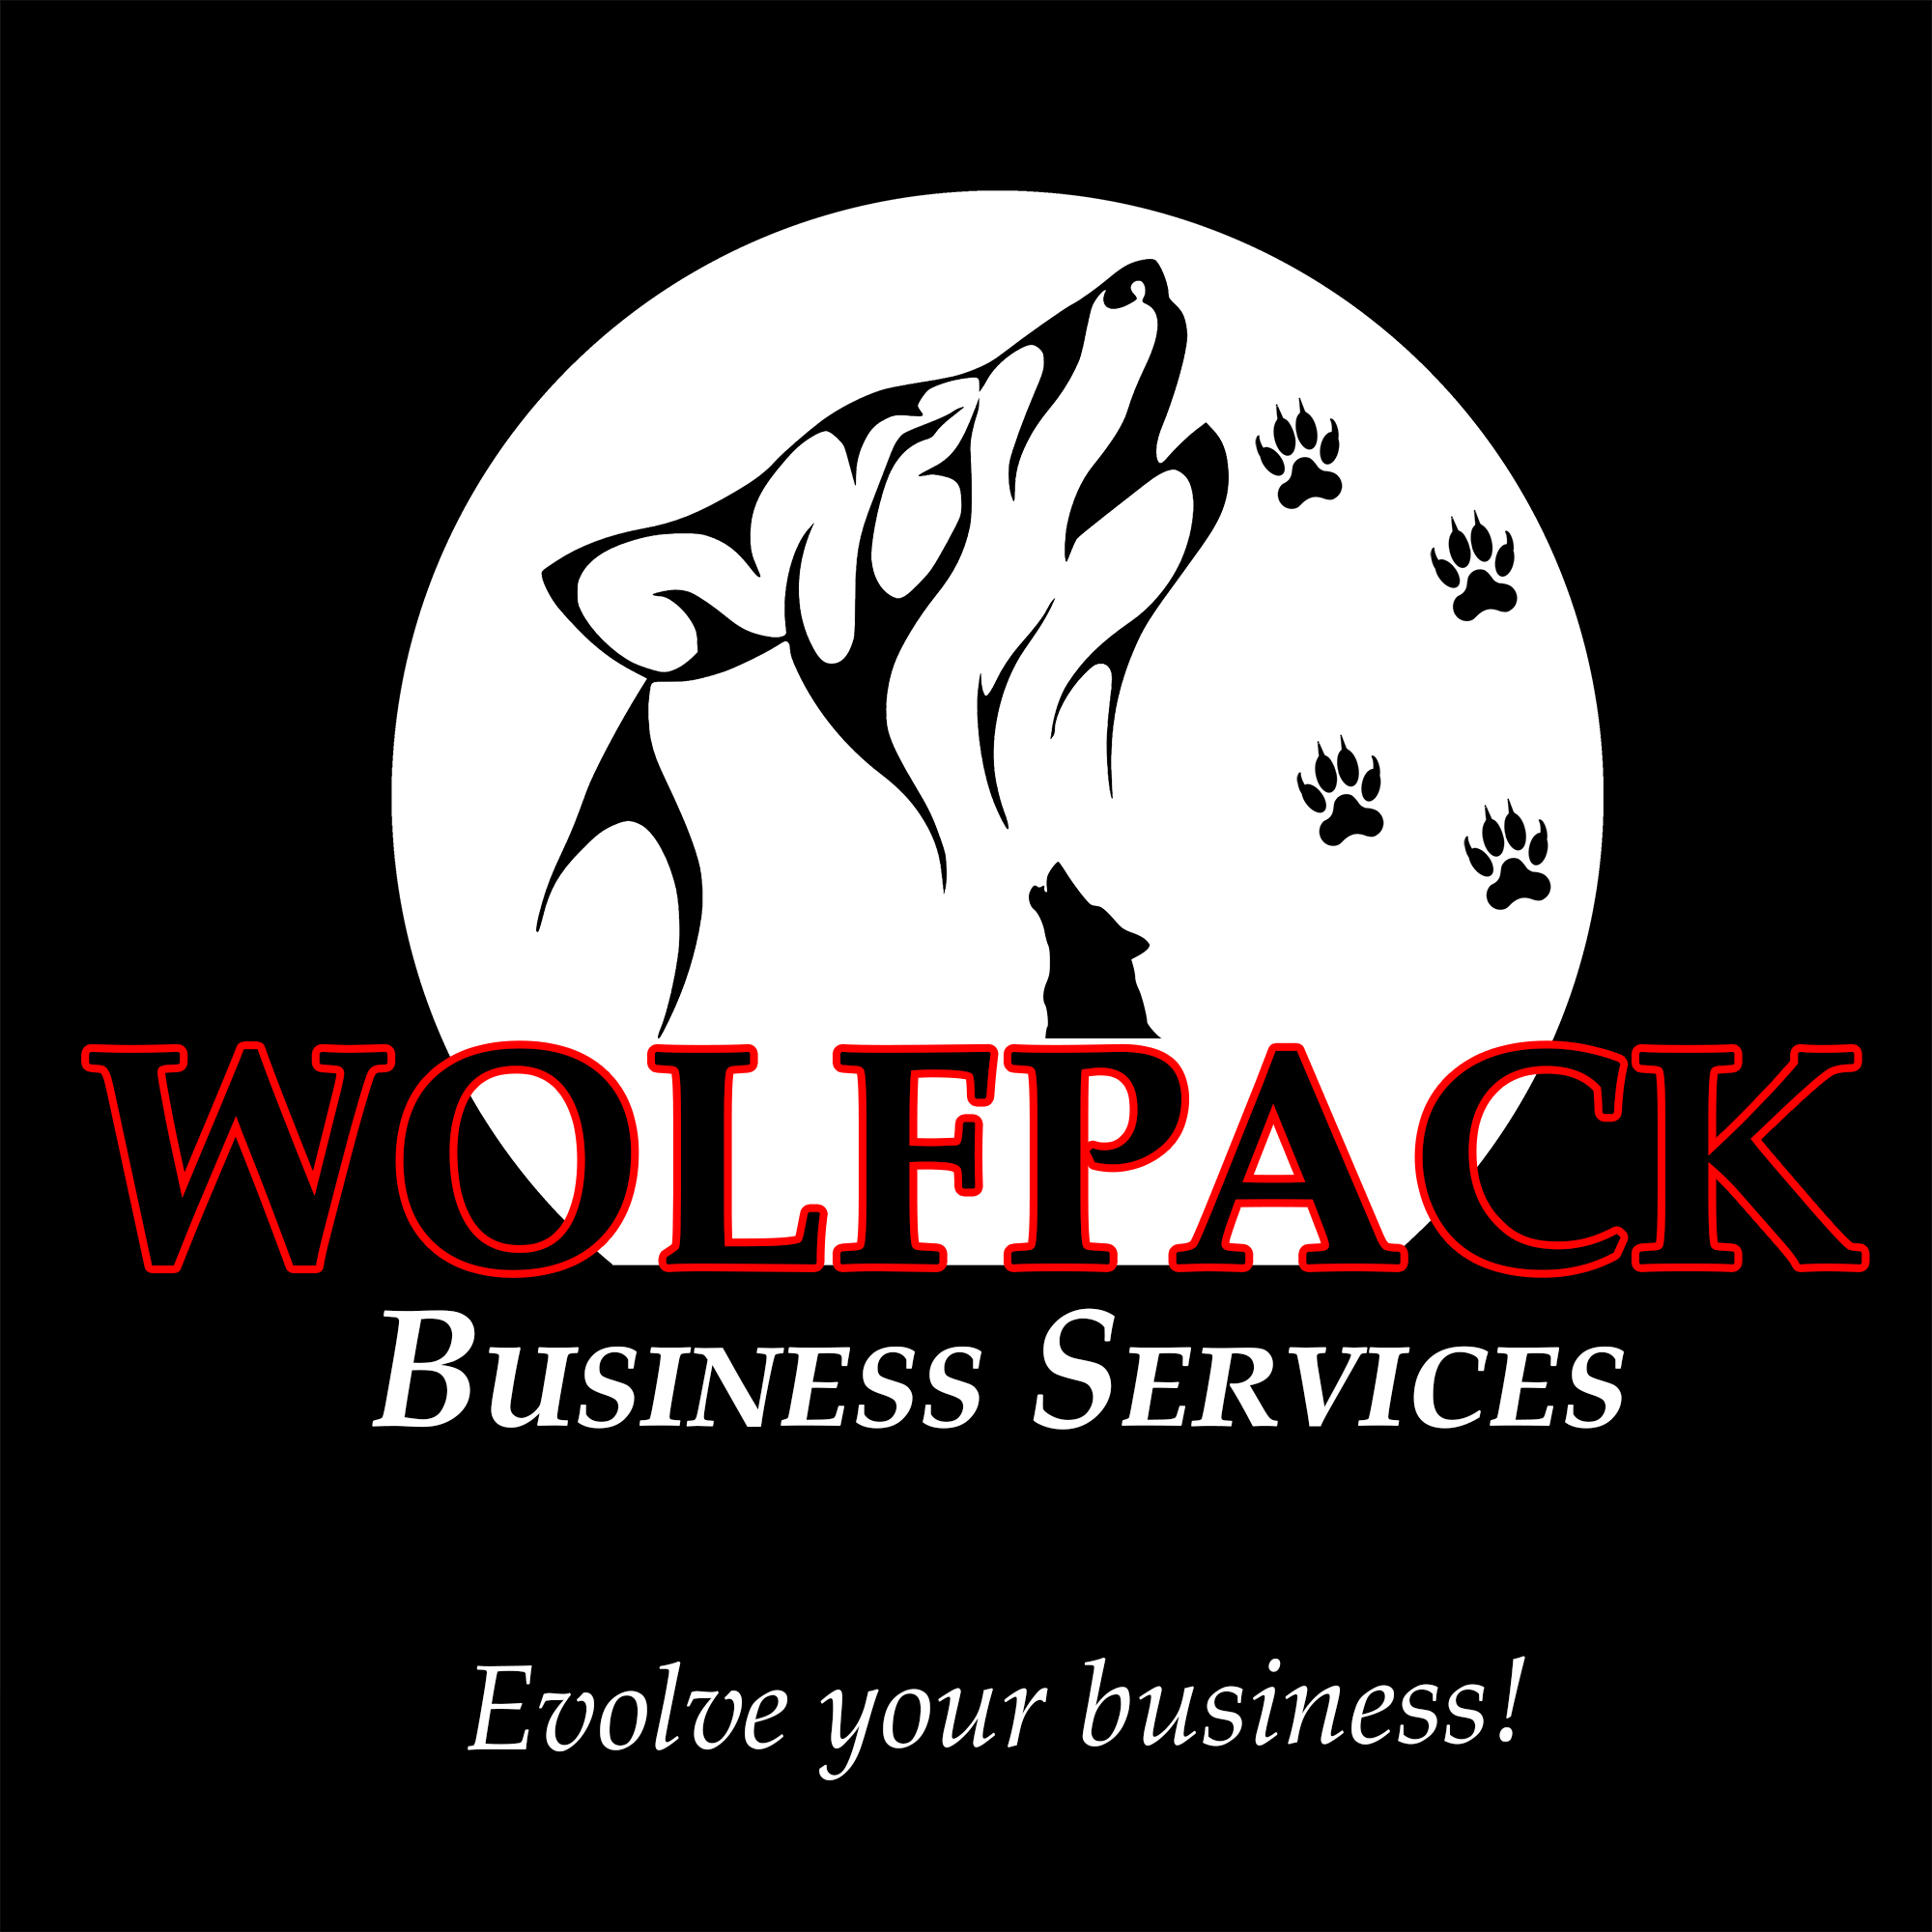 WOLFPACK BUSINESS SERVICES LOGO.jpg